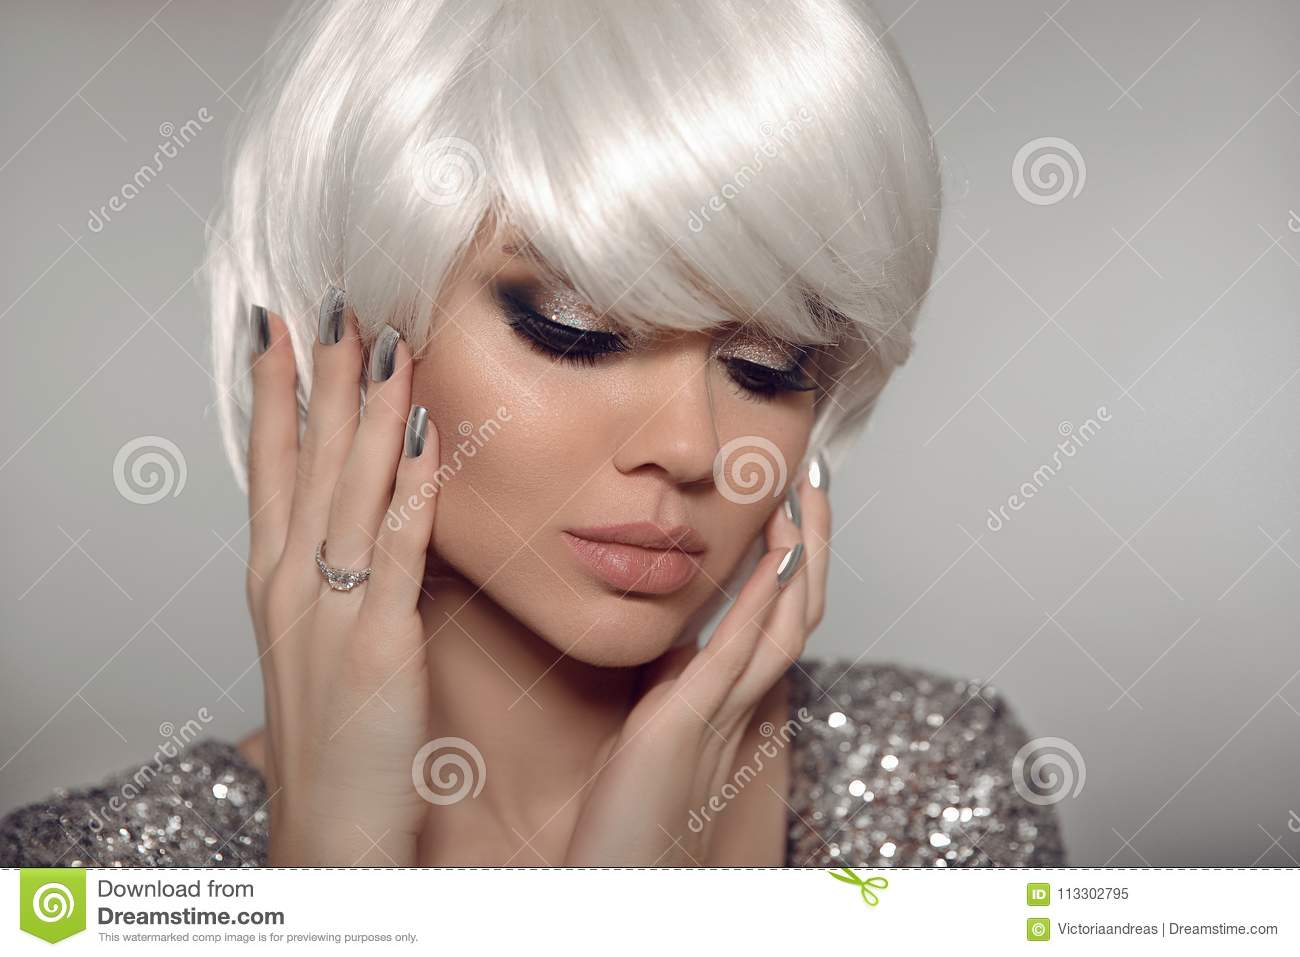 Fashion Blond With Bob Short Hairstyle And Manicure Nail Po Stock Image Image Of Adult Metallic 113302795